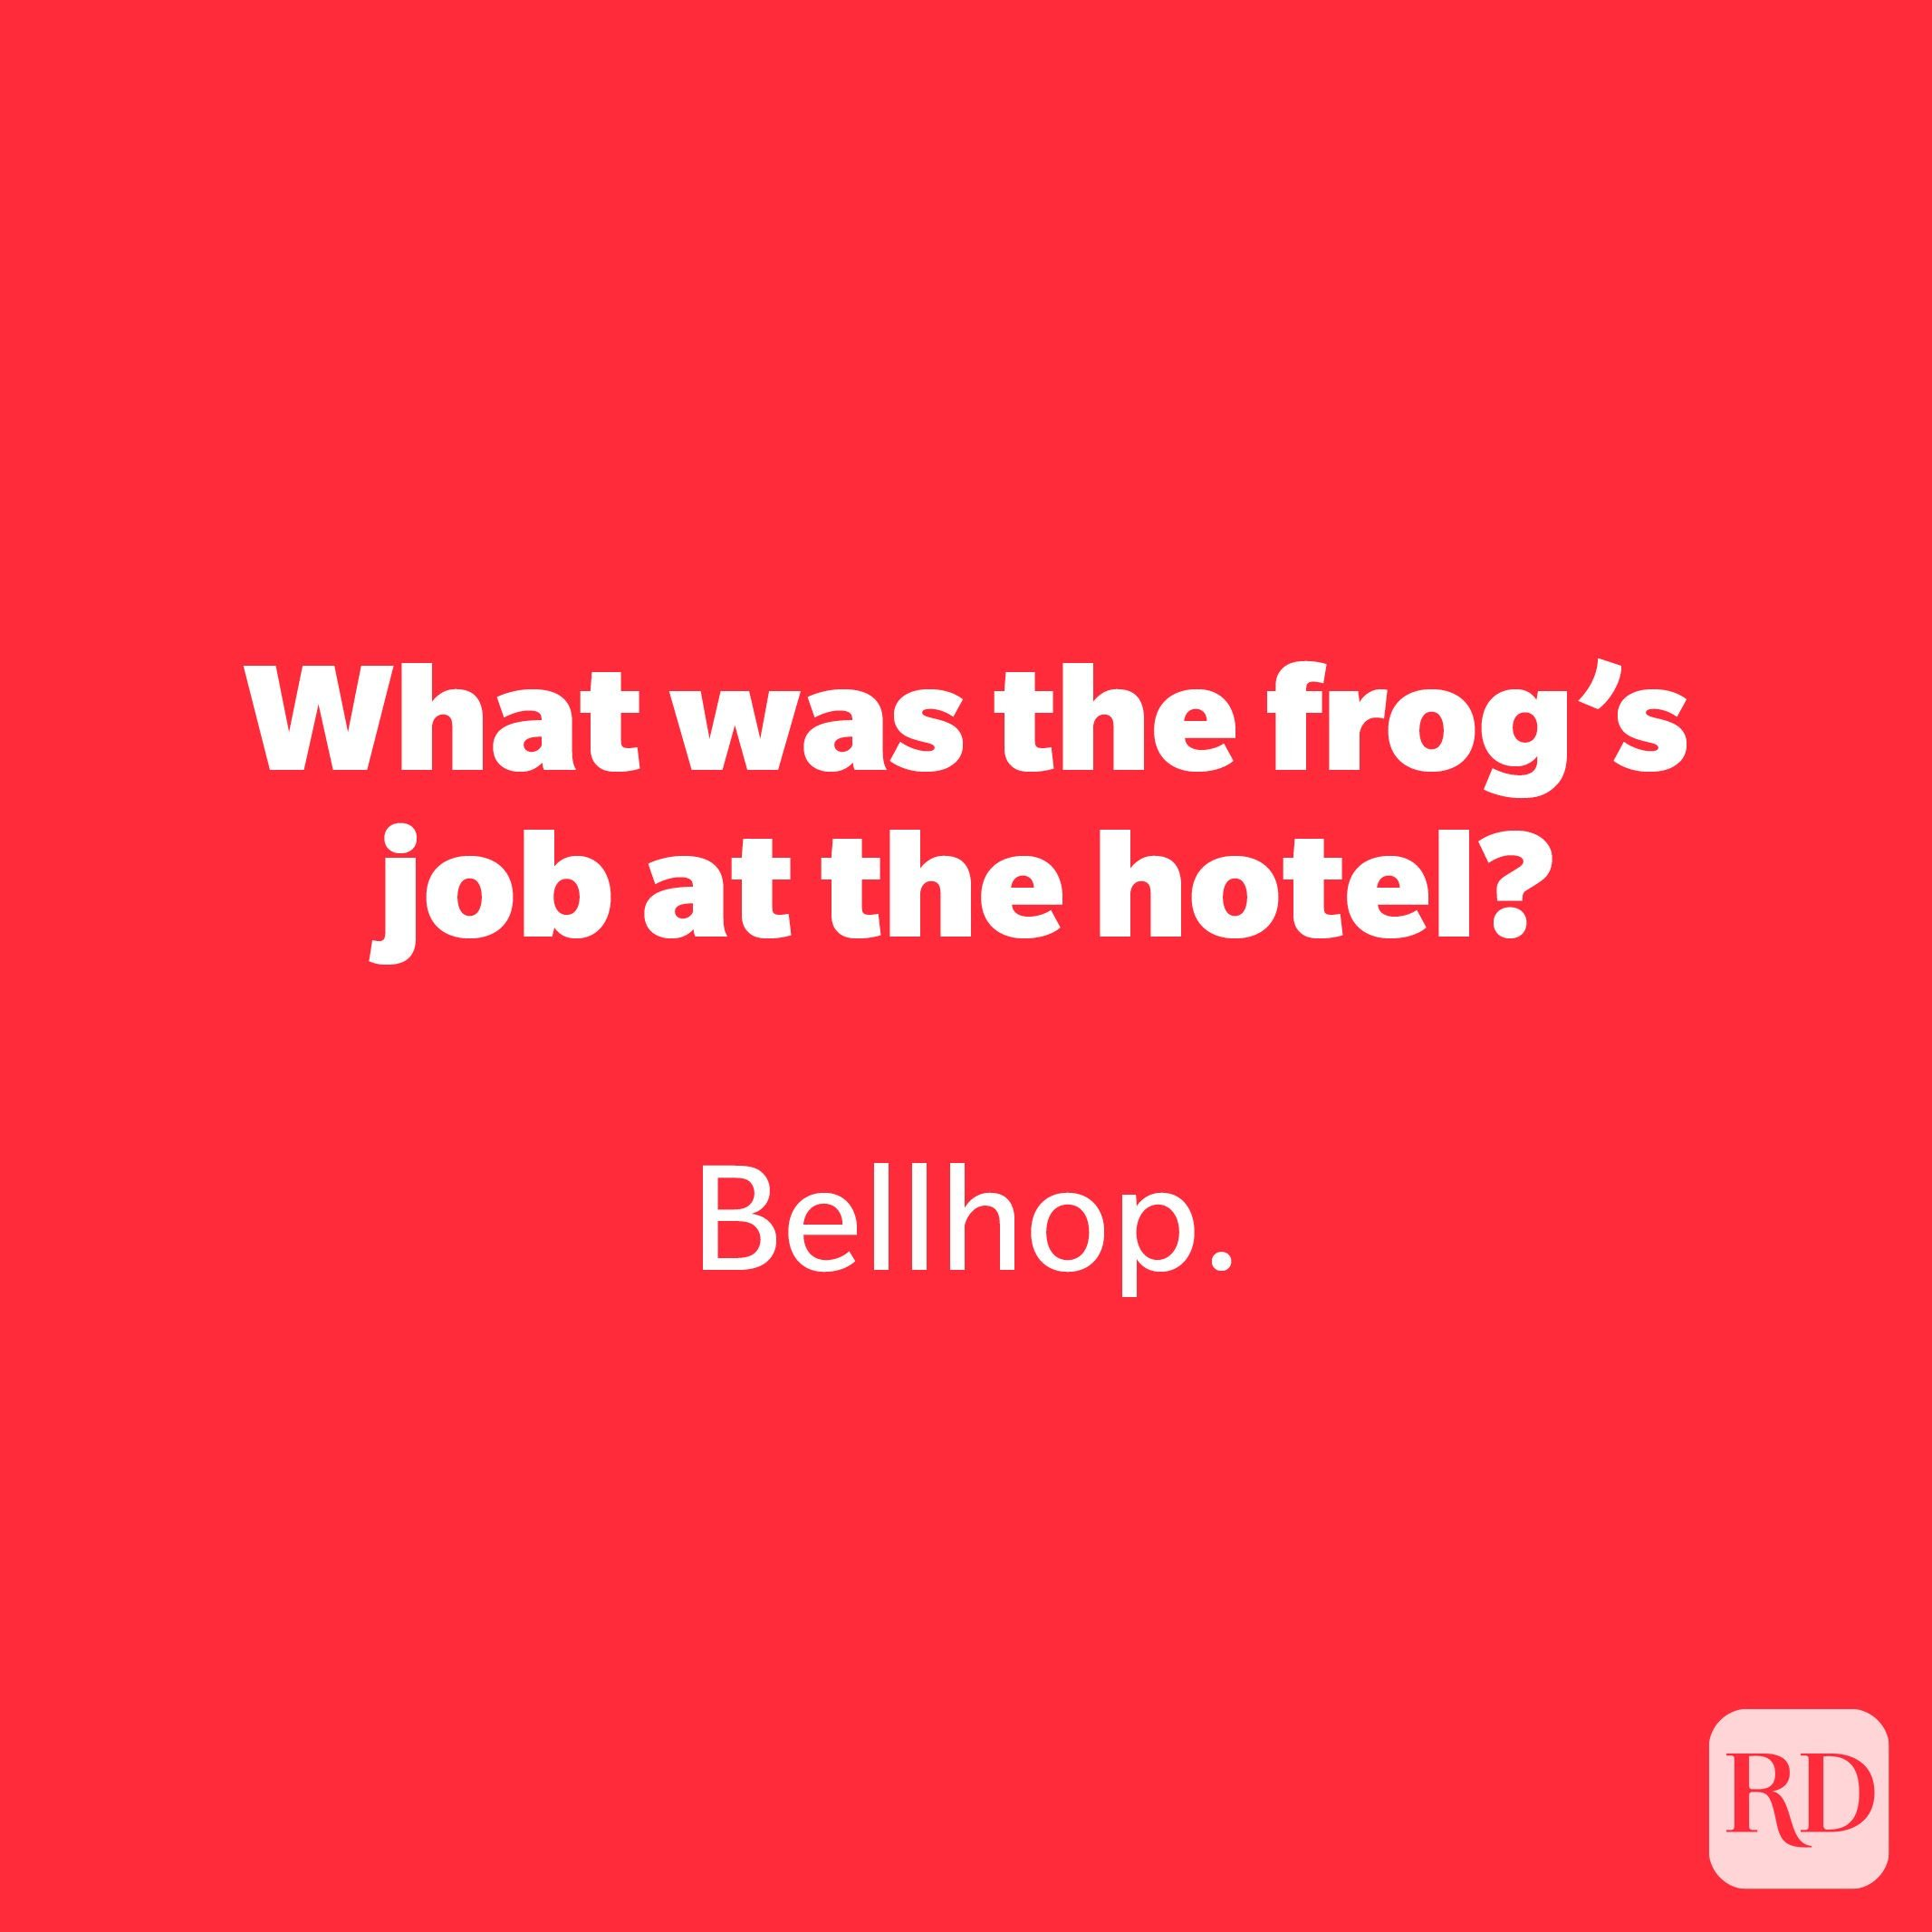 What was the frog's job at the hotel?